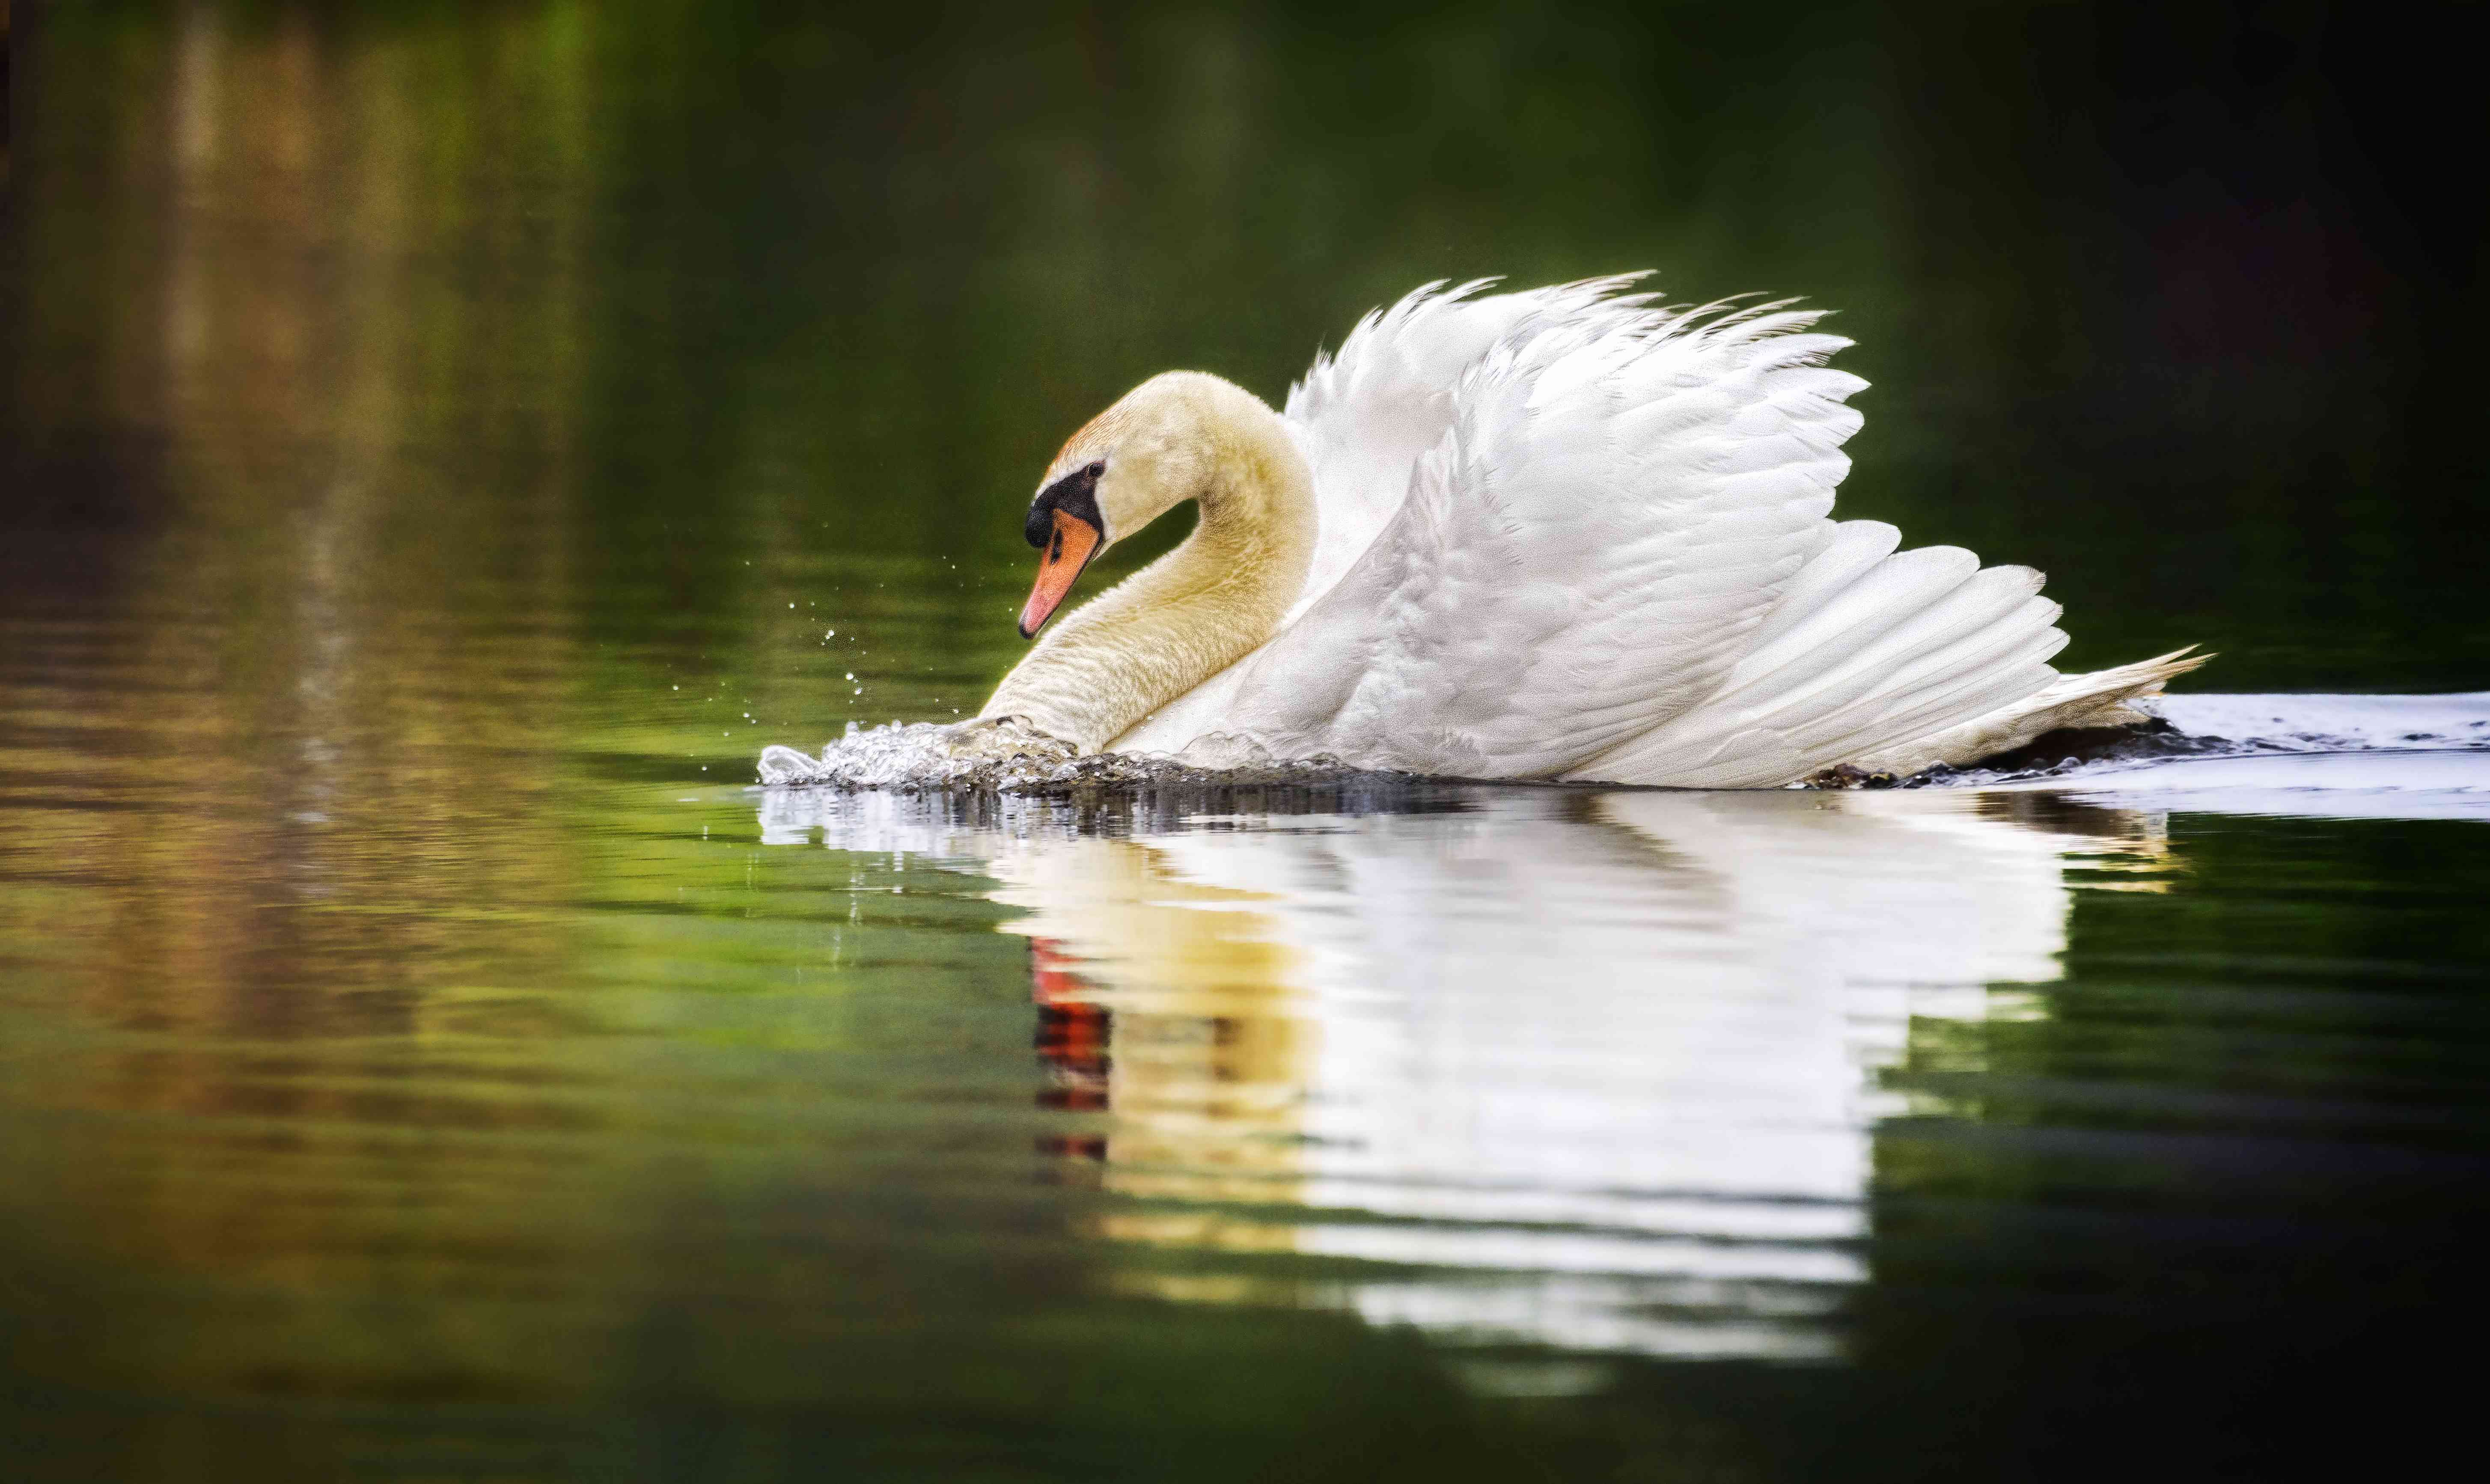 Beautiful Swan in Motion Against Smooth Reflective Water